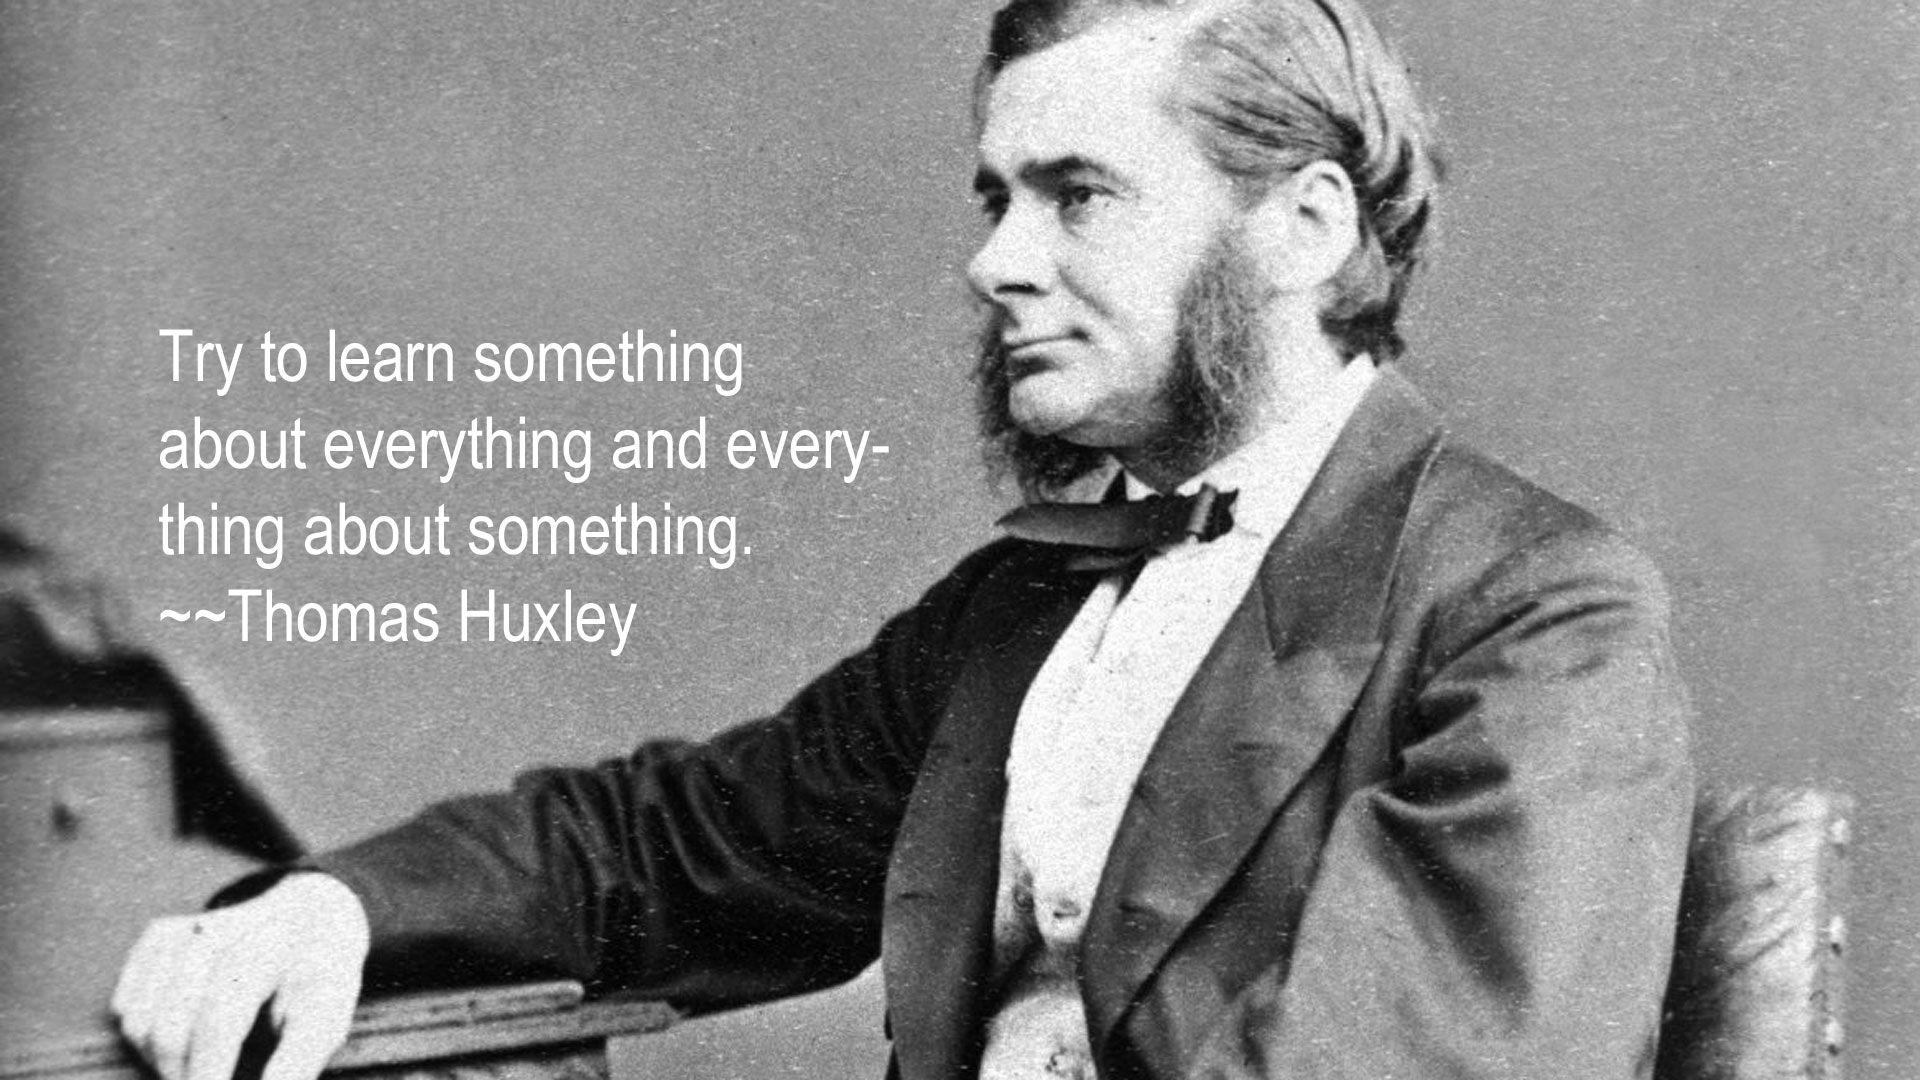 Thomas Huxley's quote #2